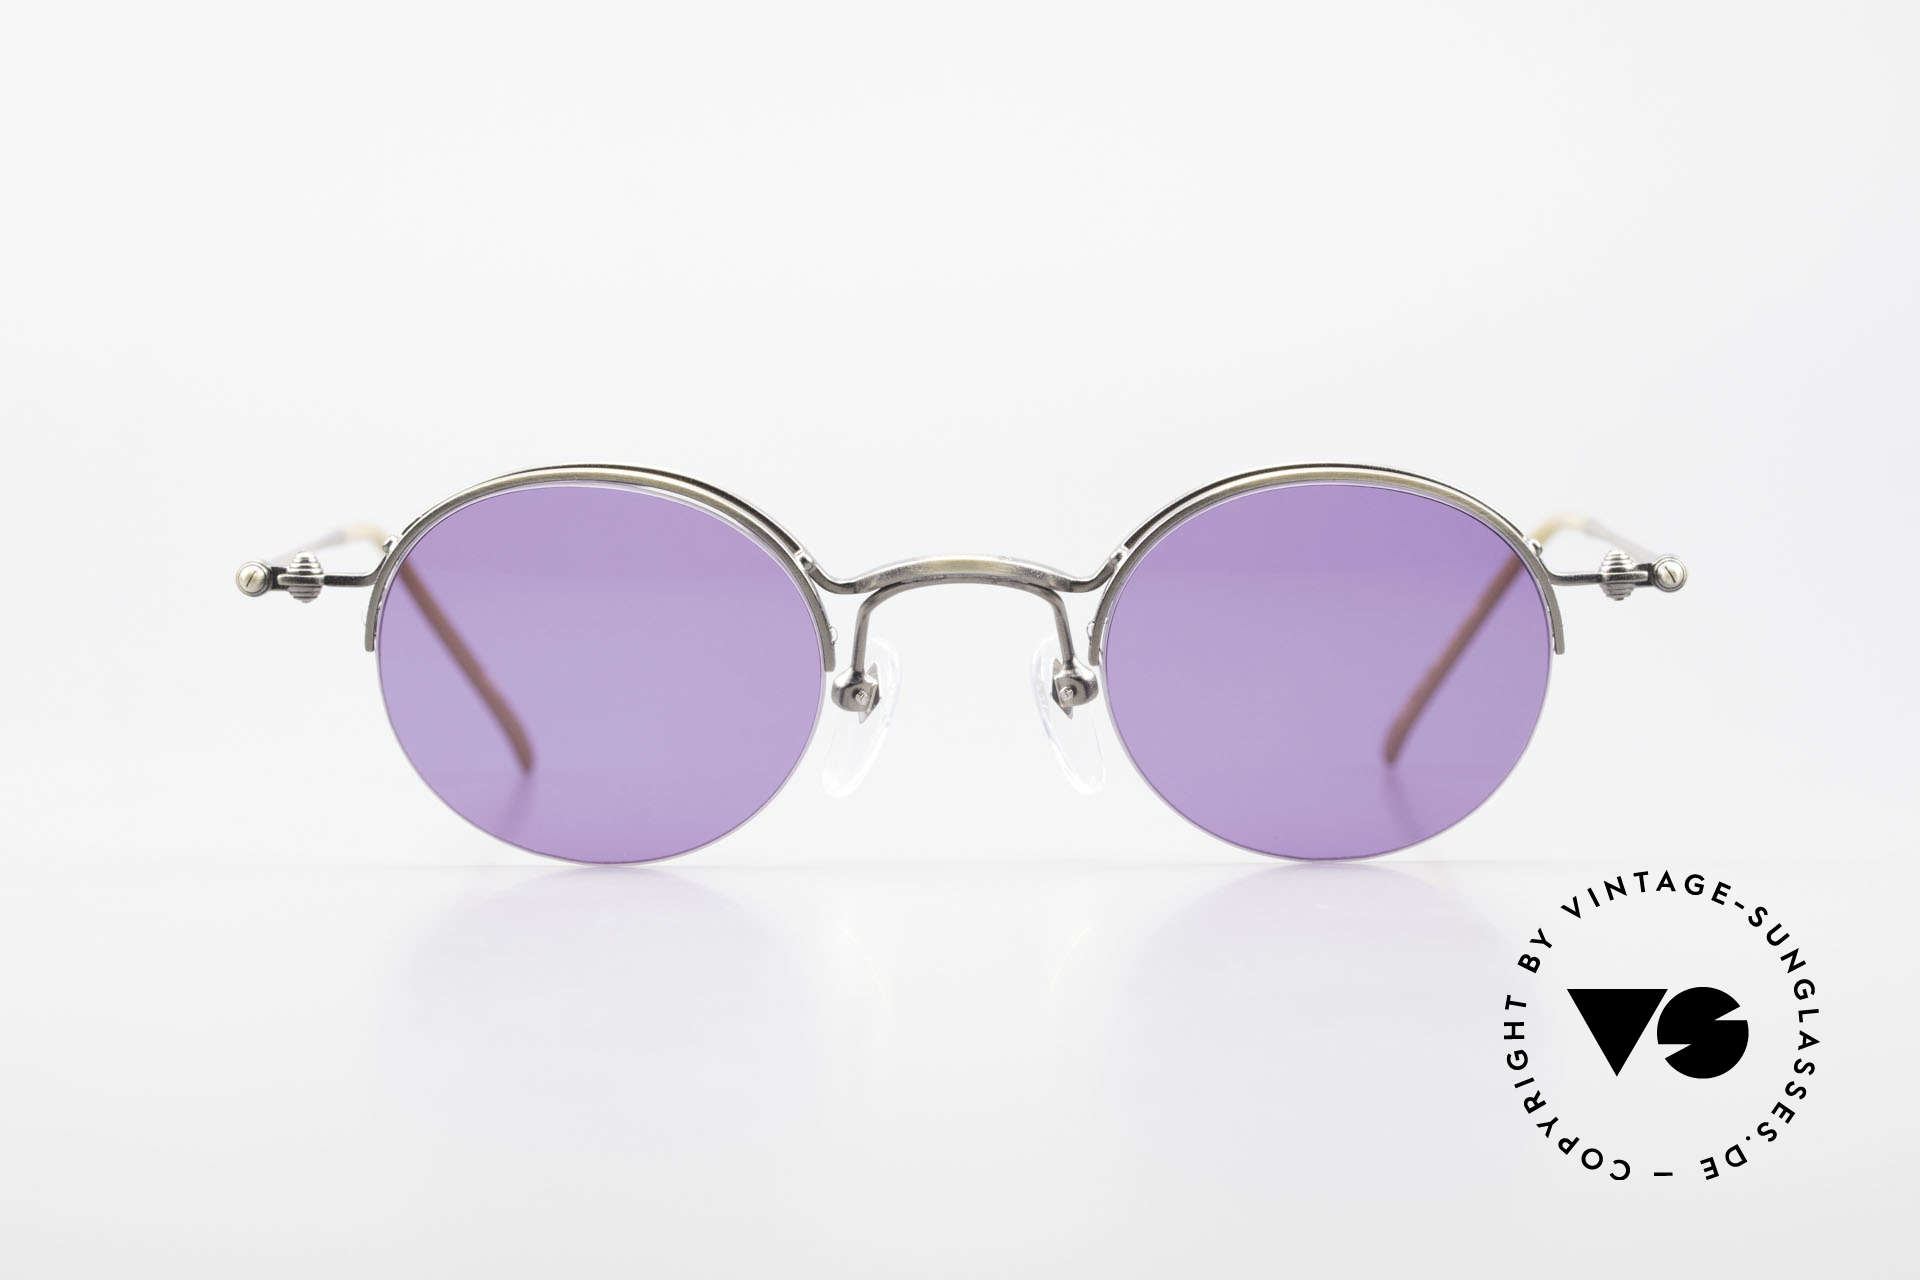 Jean Paul Gaultier 55-7108 Small Panto Sunglasses 90's, legendary 'panto shape' interpreted by JP Gaultier, Made for Men and Women